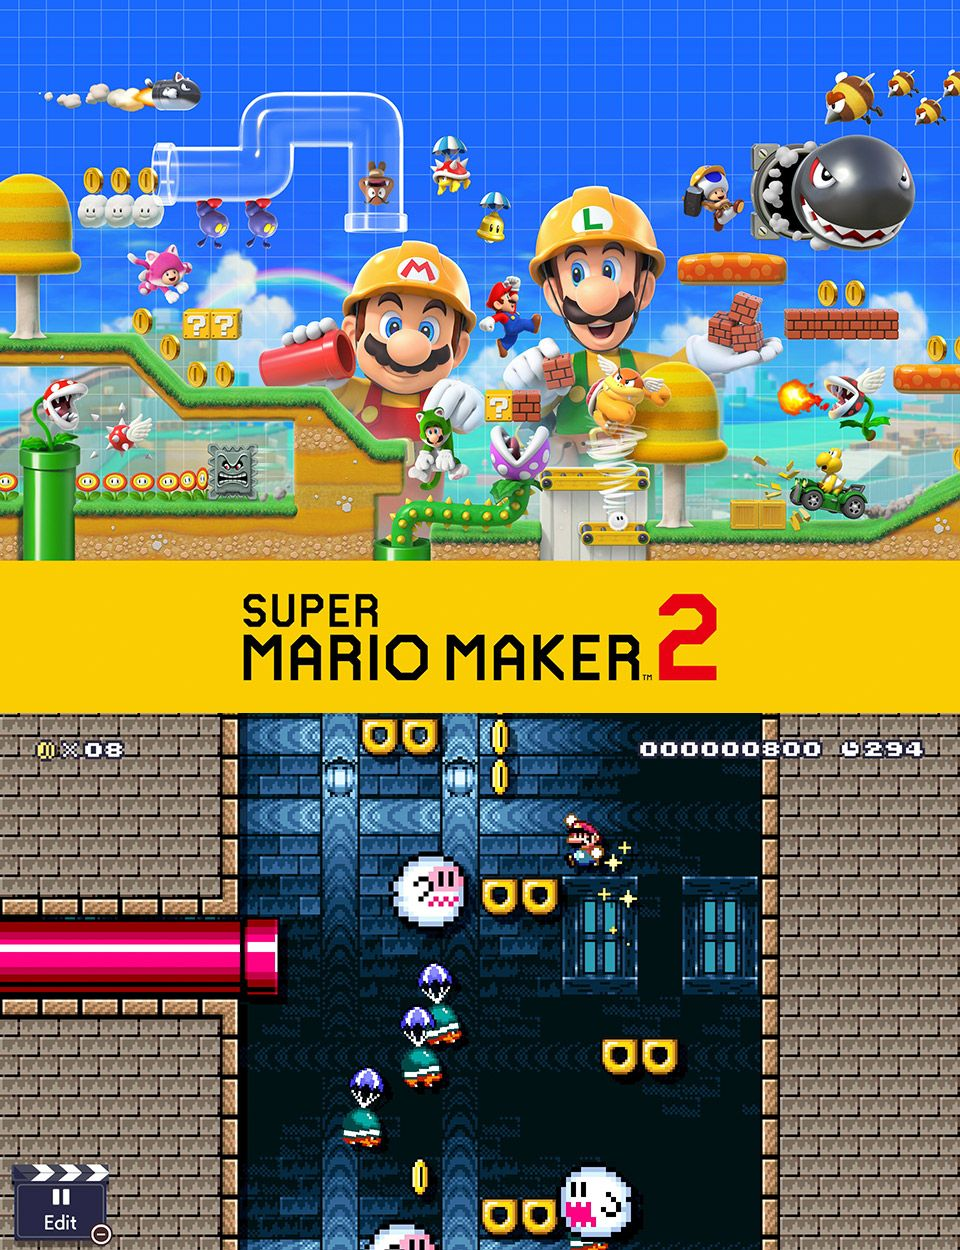 First Look At The New Features In Super Mario Maker 2 For The Nintendo Switch Super Mario Bros Games Super Mario Mario